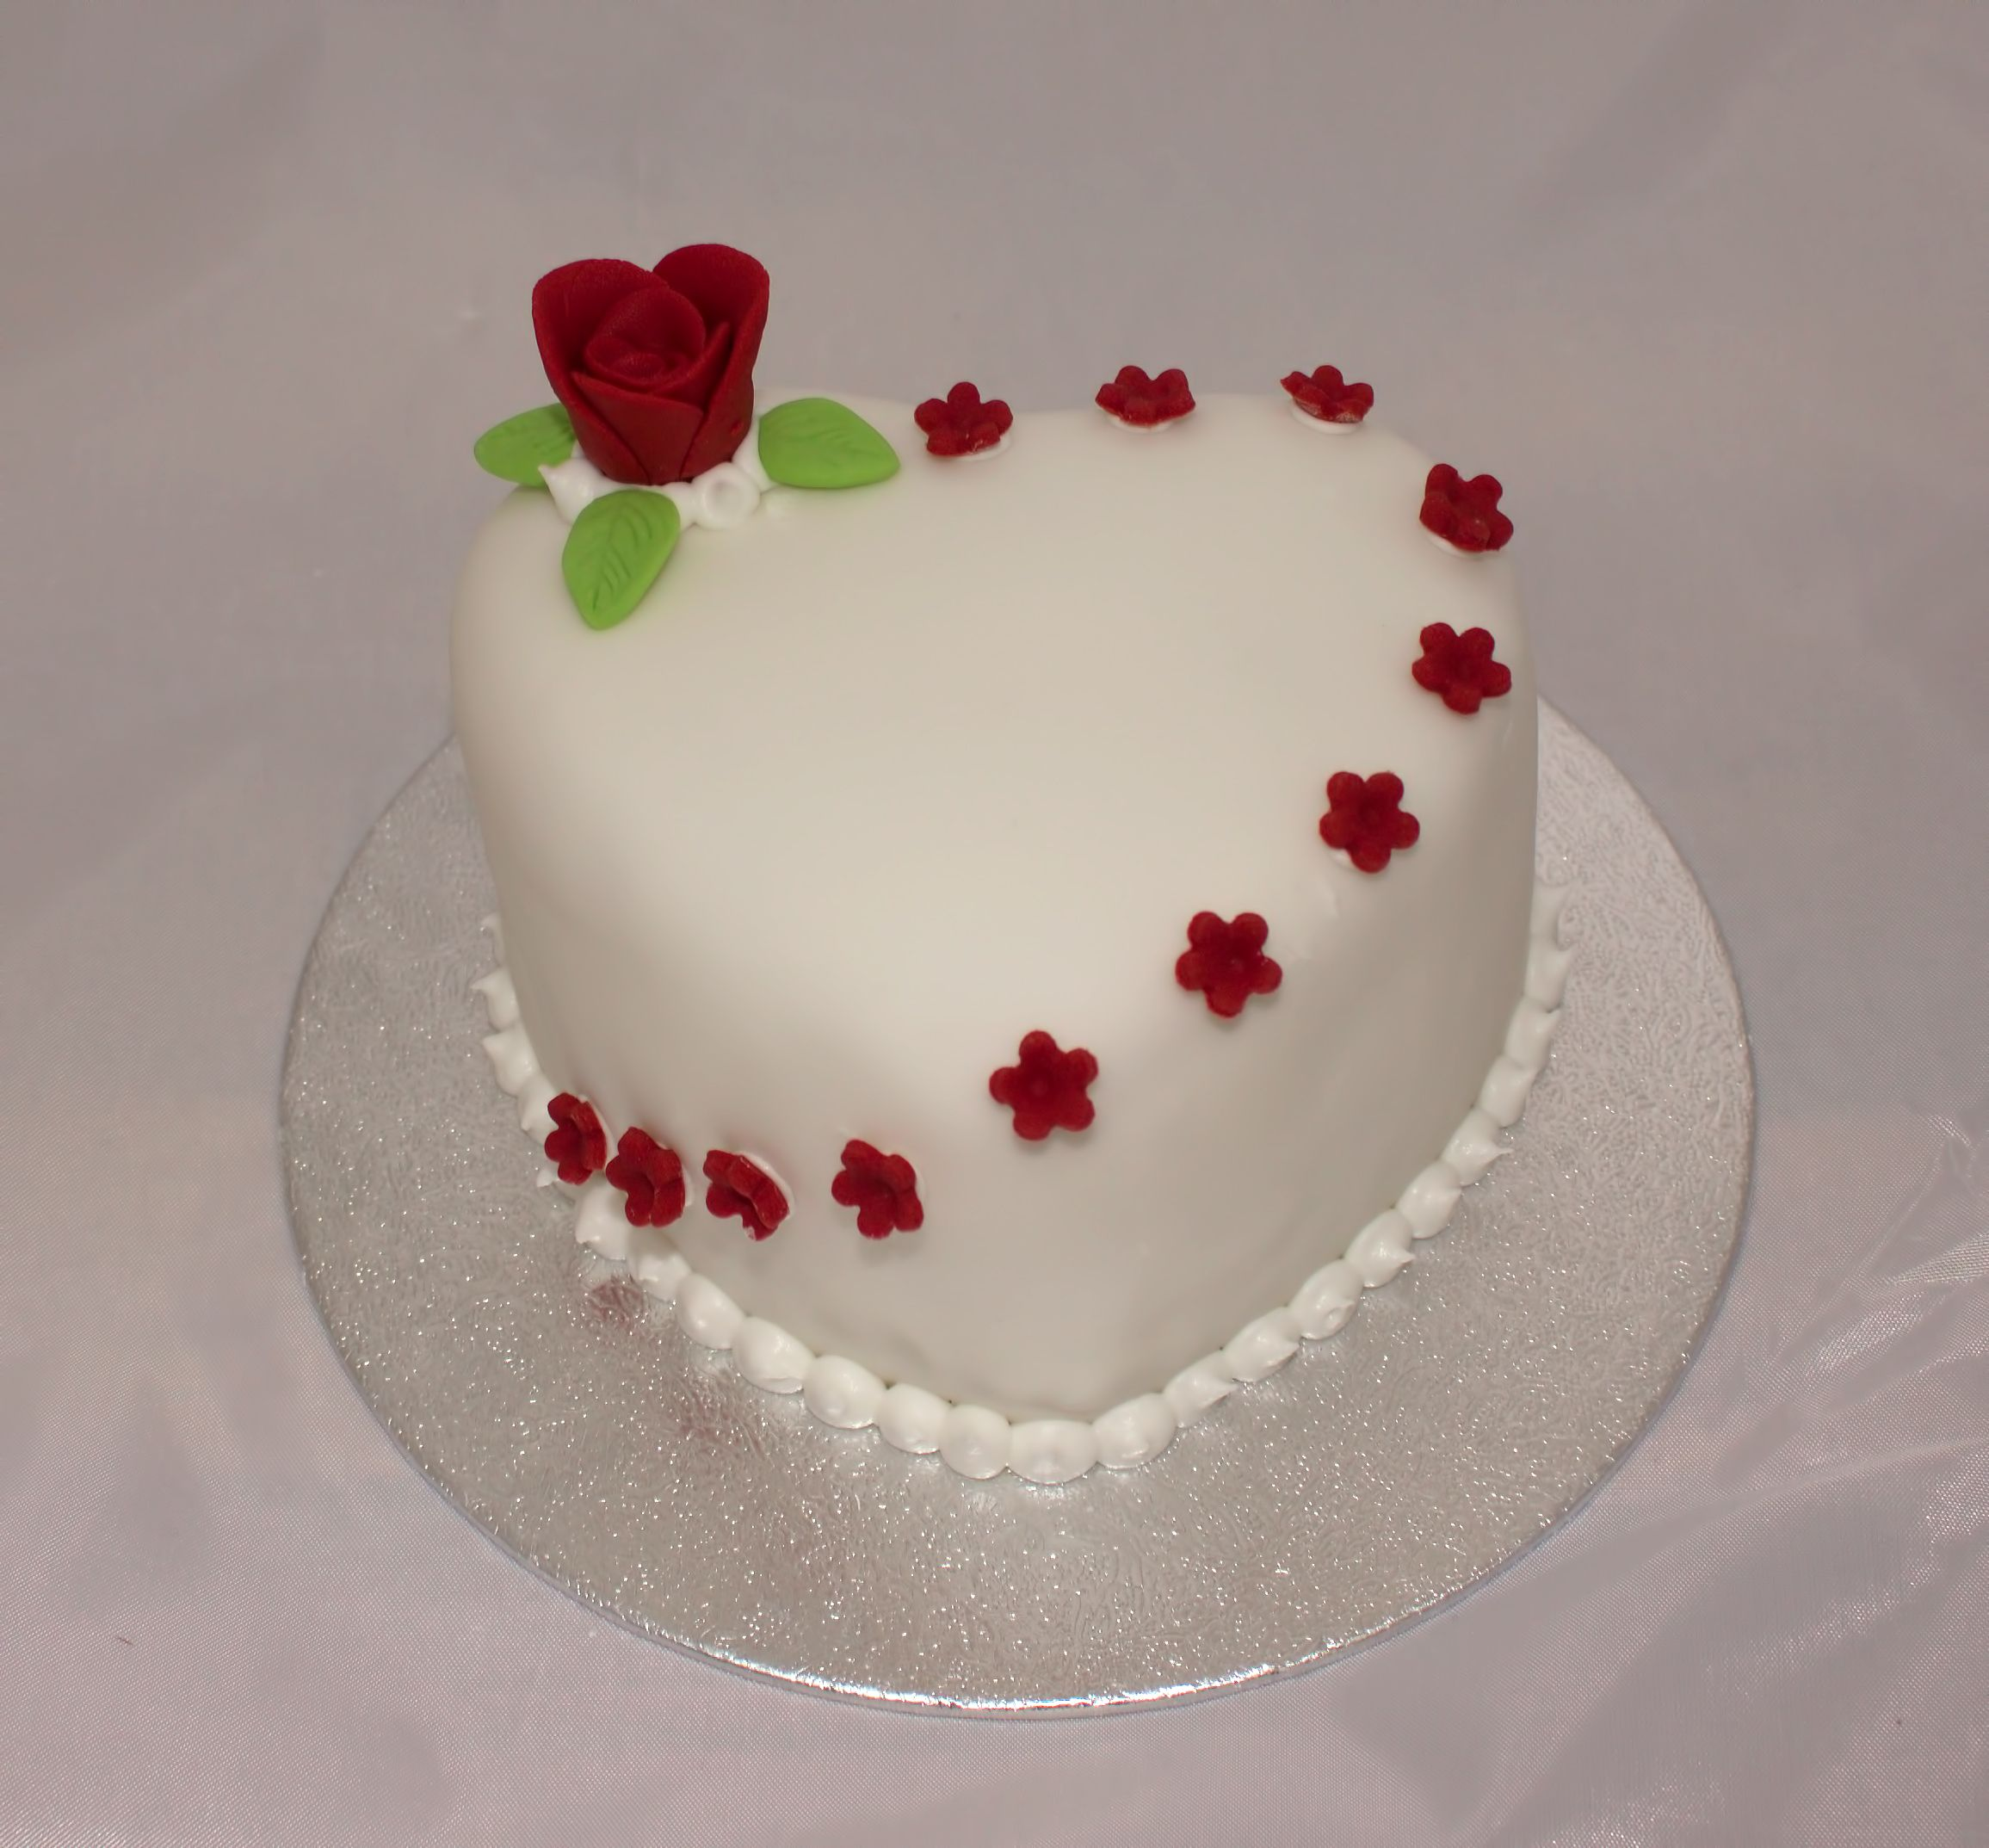 Individual Heart Cake With Edible Red Flowers And Rose